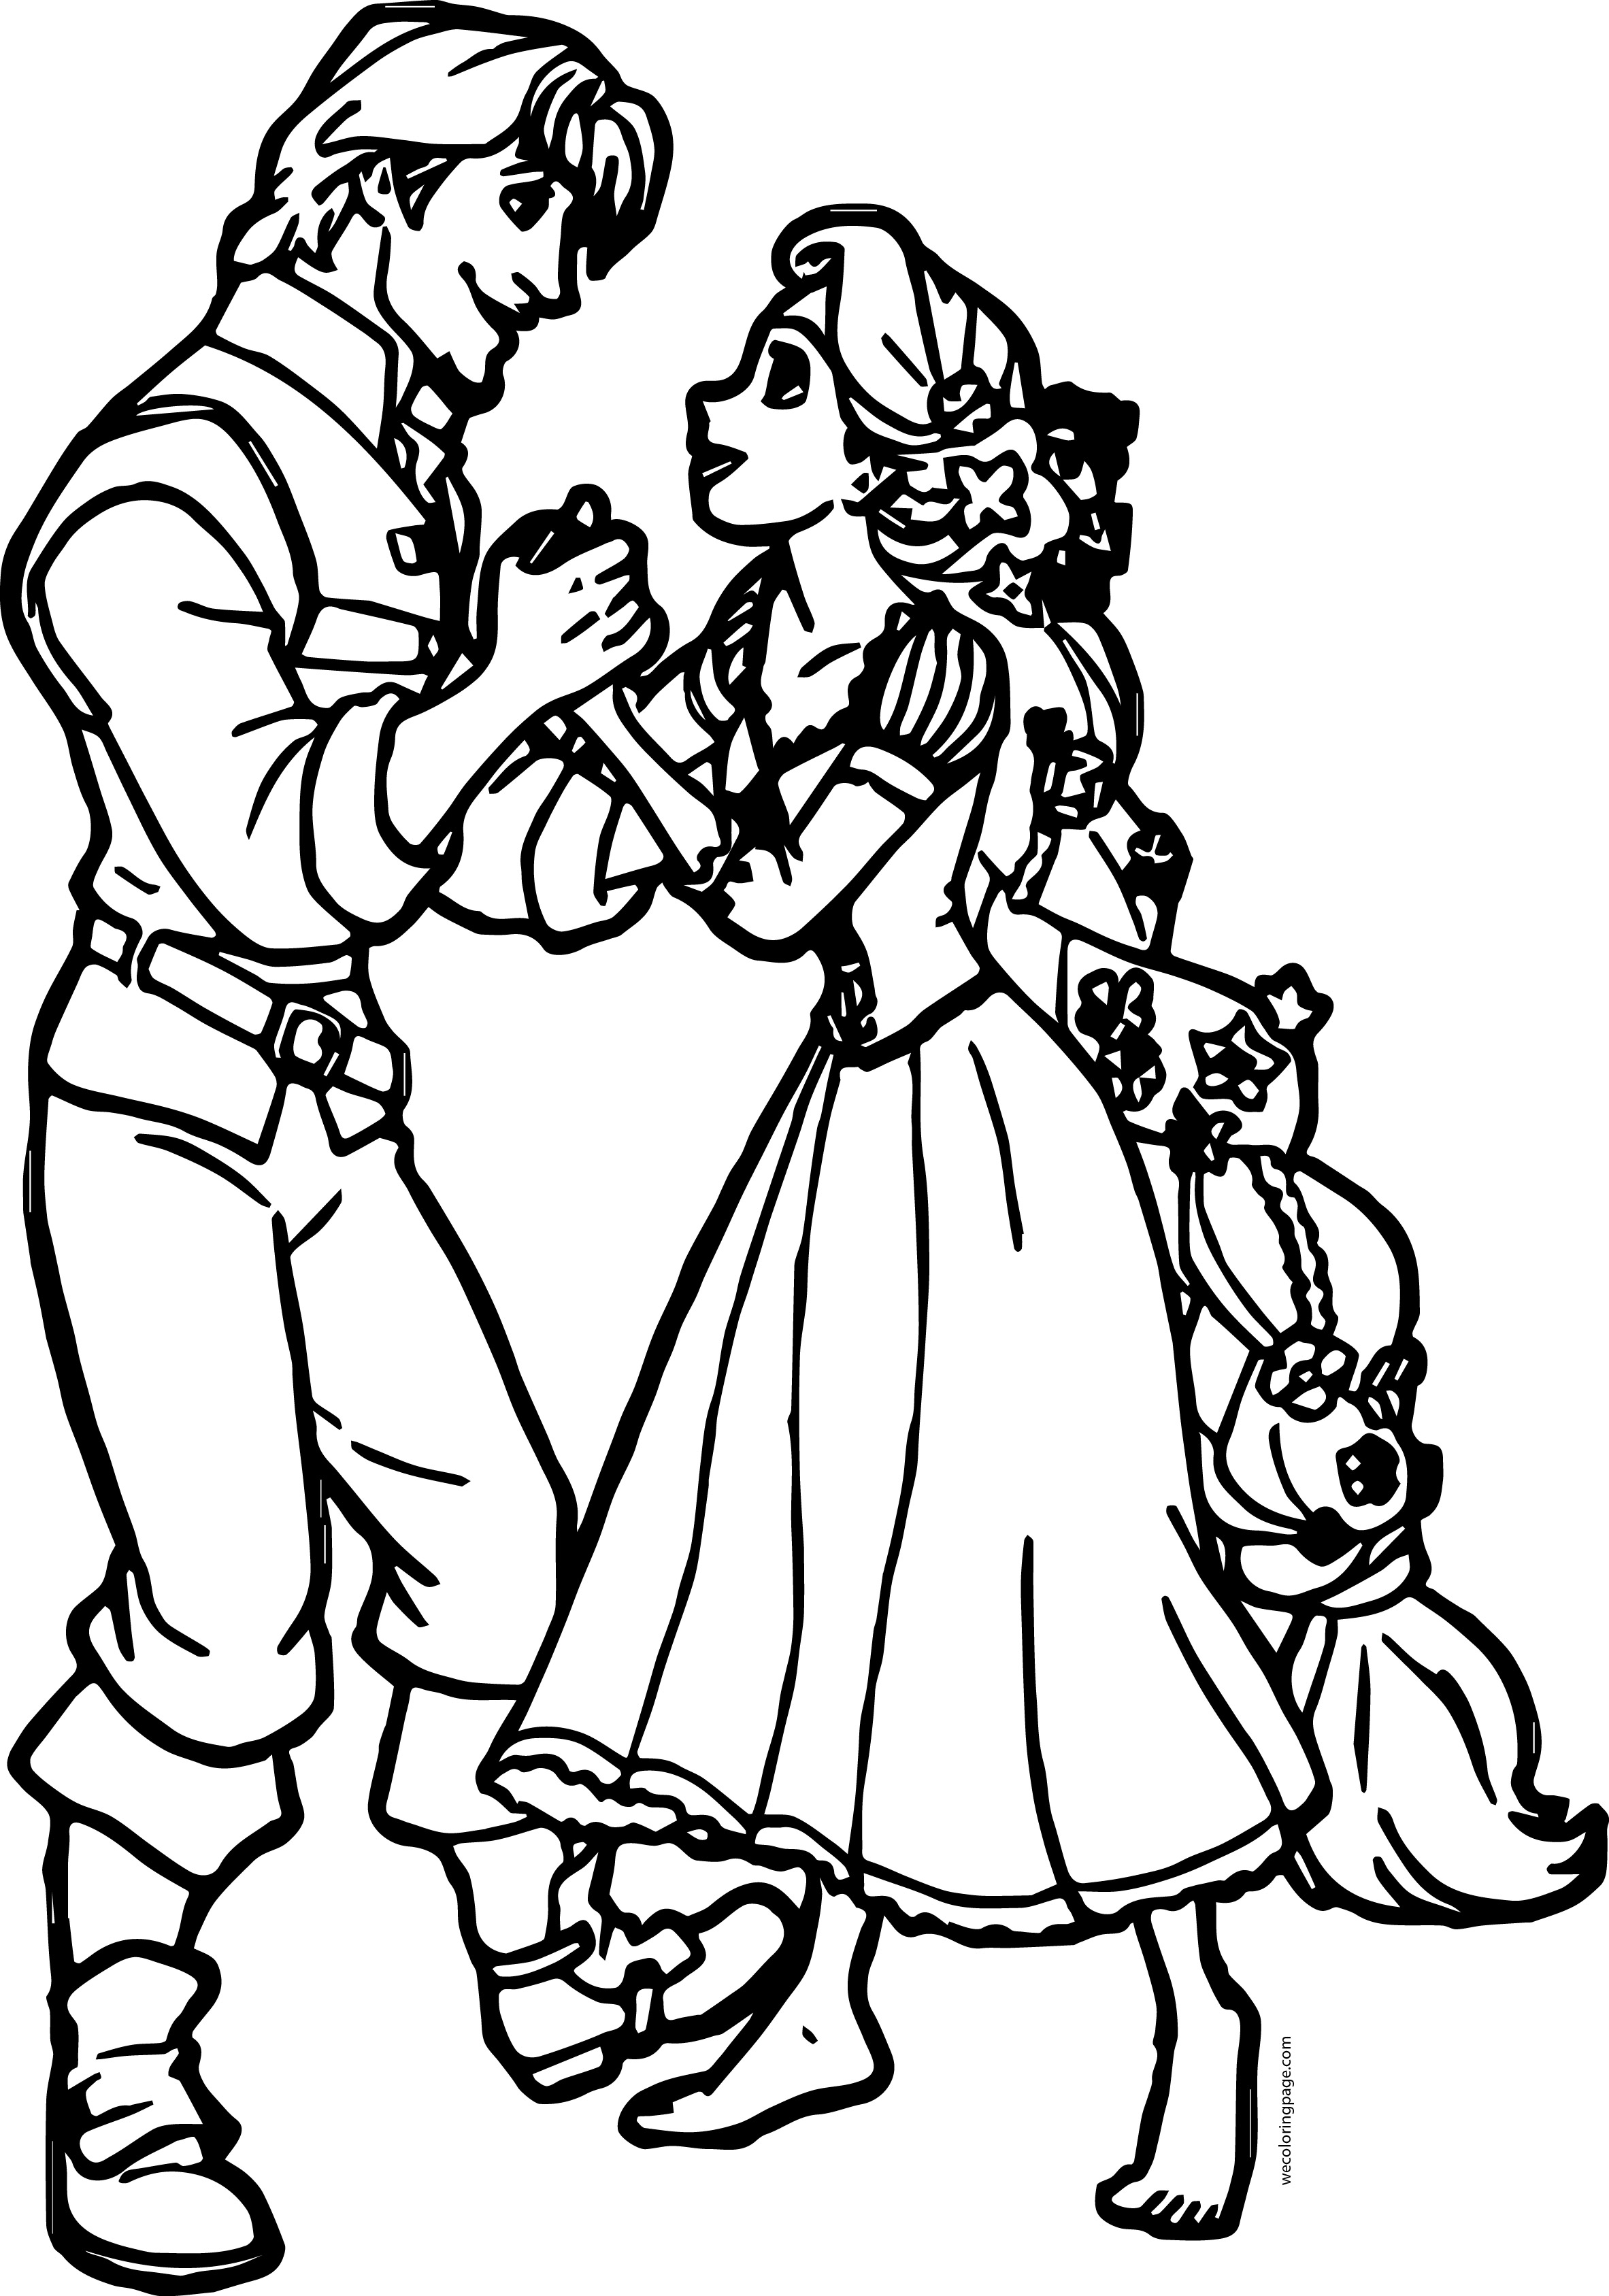 Rapunzel And Flynn Together Coloring Page